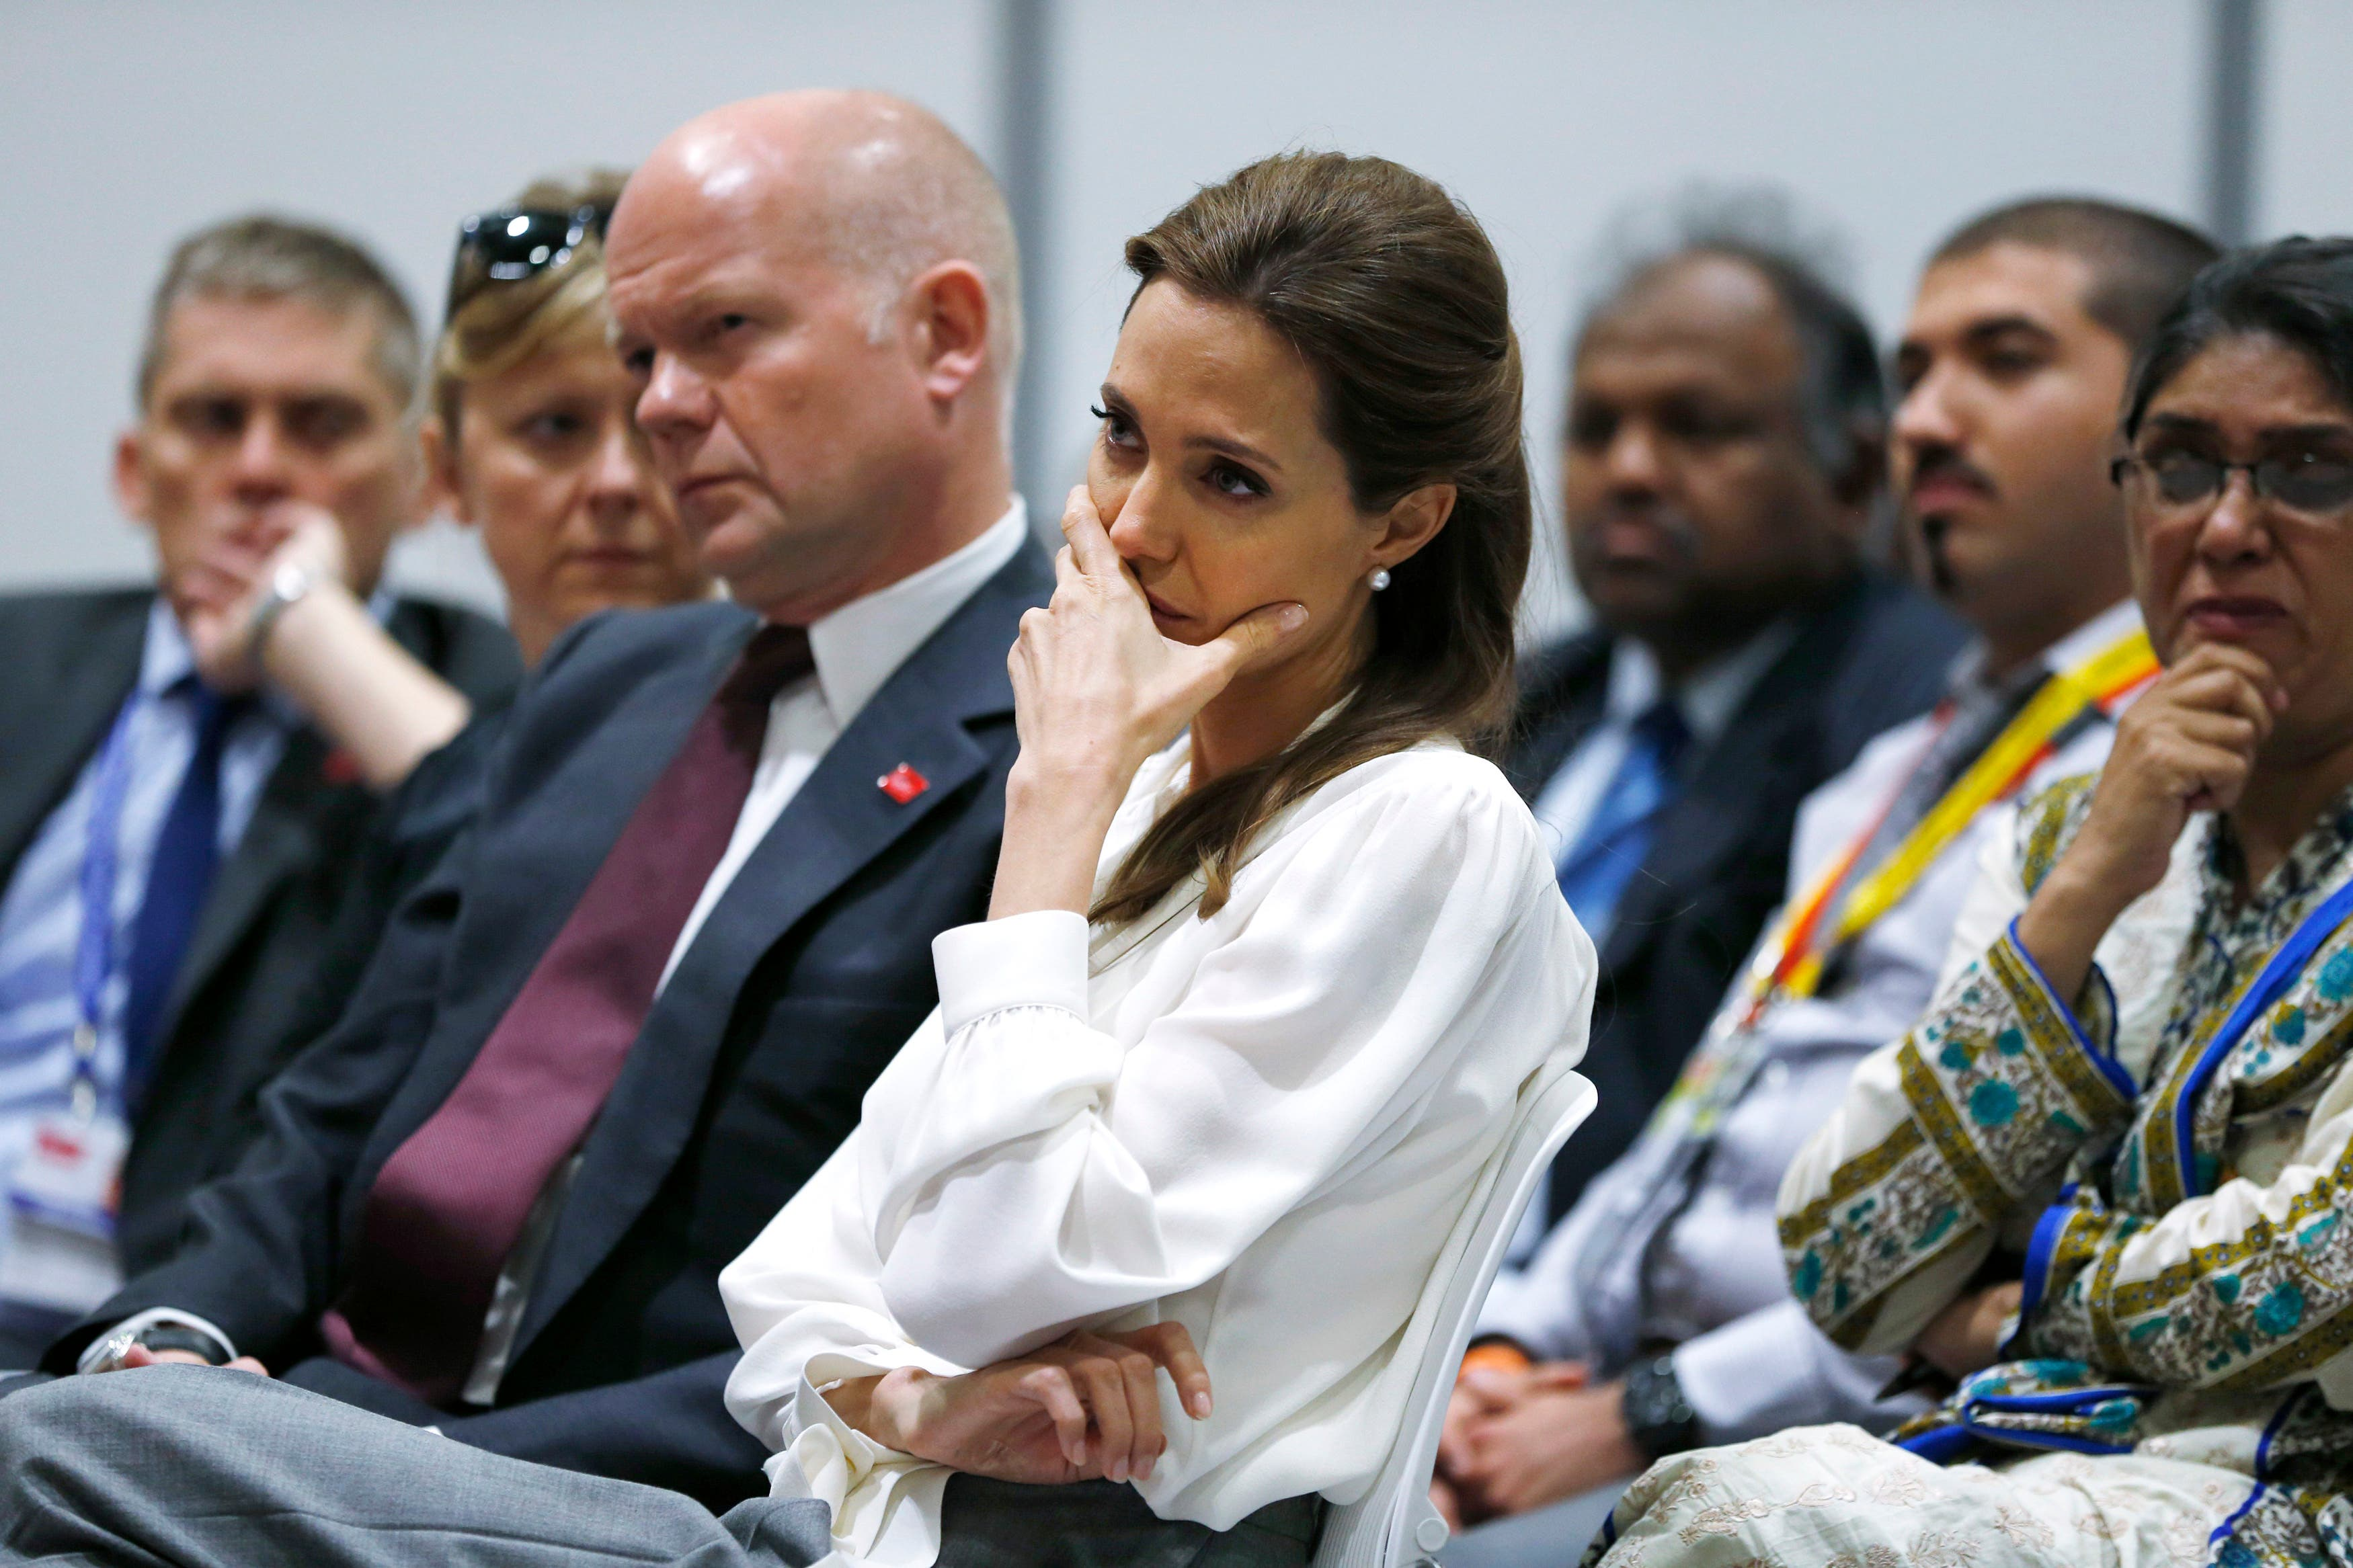 Angelina Jolie and William Hague at the 'End Sexual Violence in Conflict' summit. (Reuters)